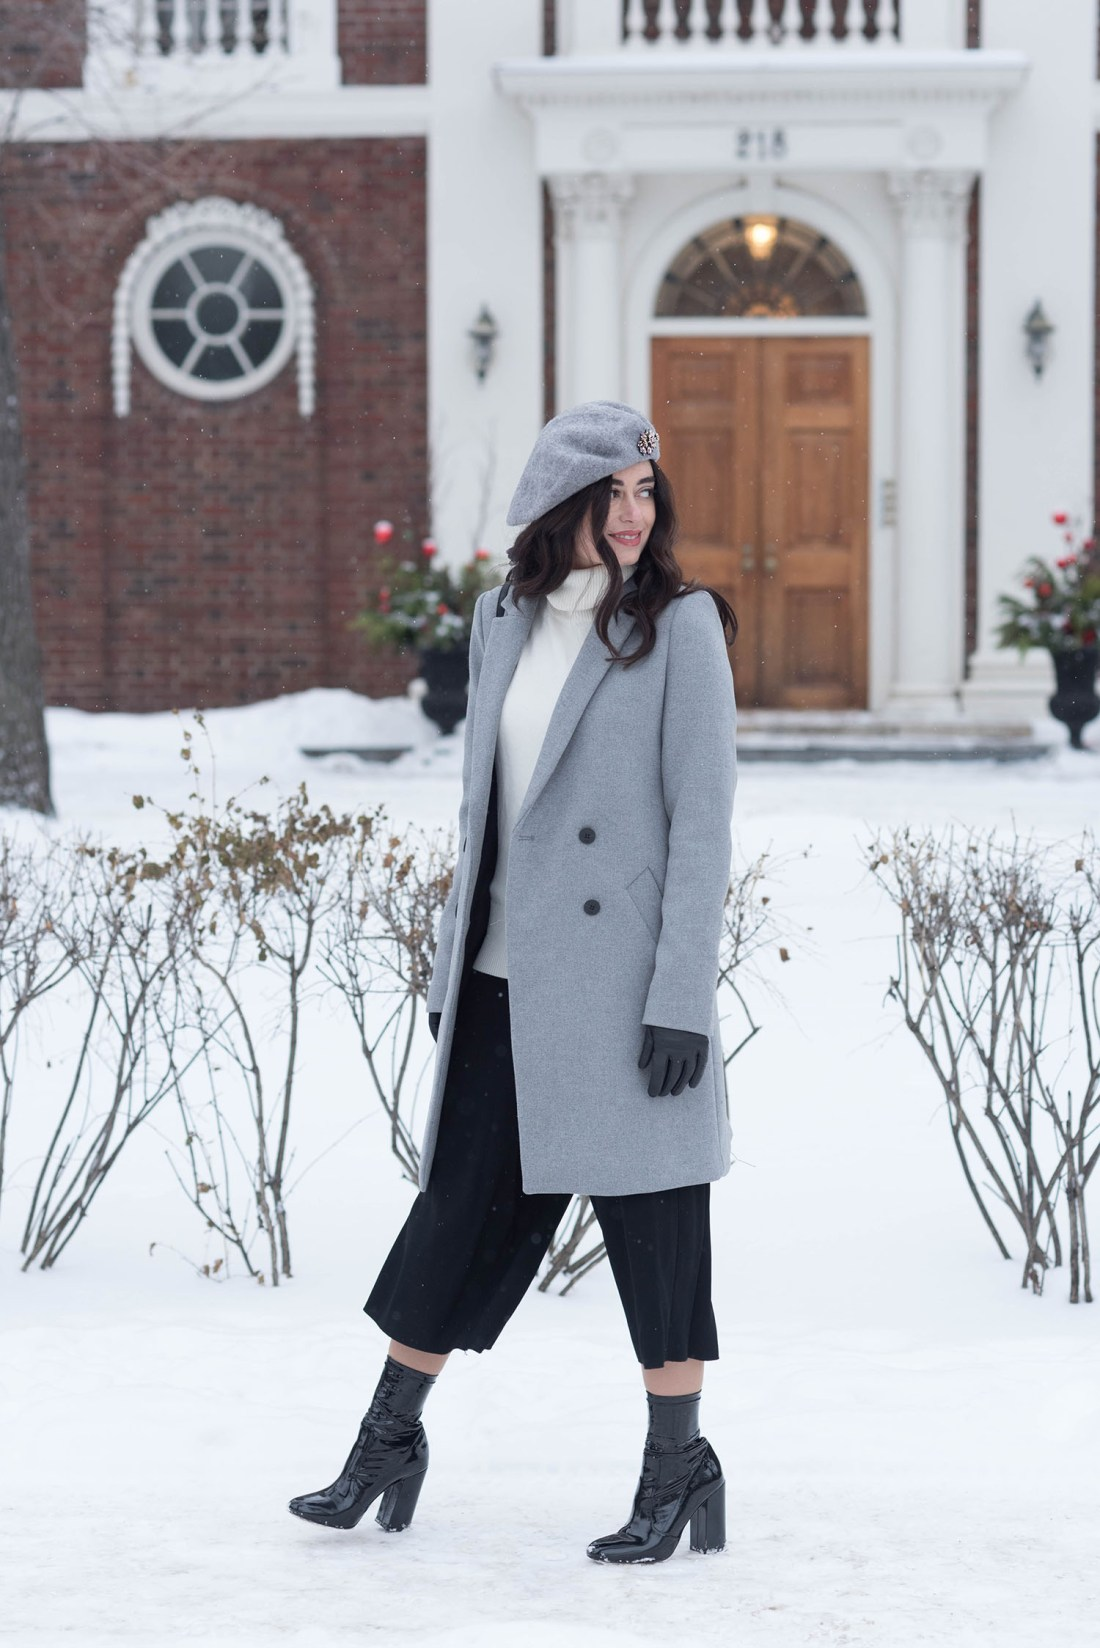 Fashion blogger Cee Fardoe of Coco & Vera walks through the winter snow wearing a Zara coat and Aritzia black culottes